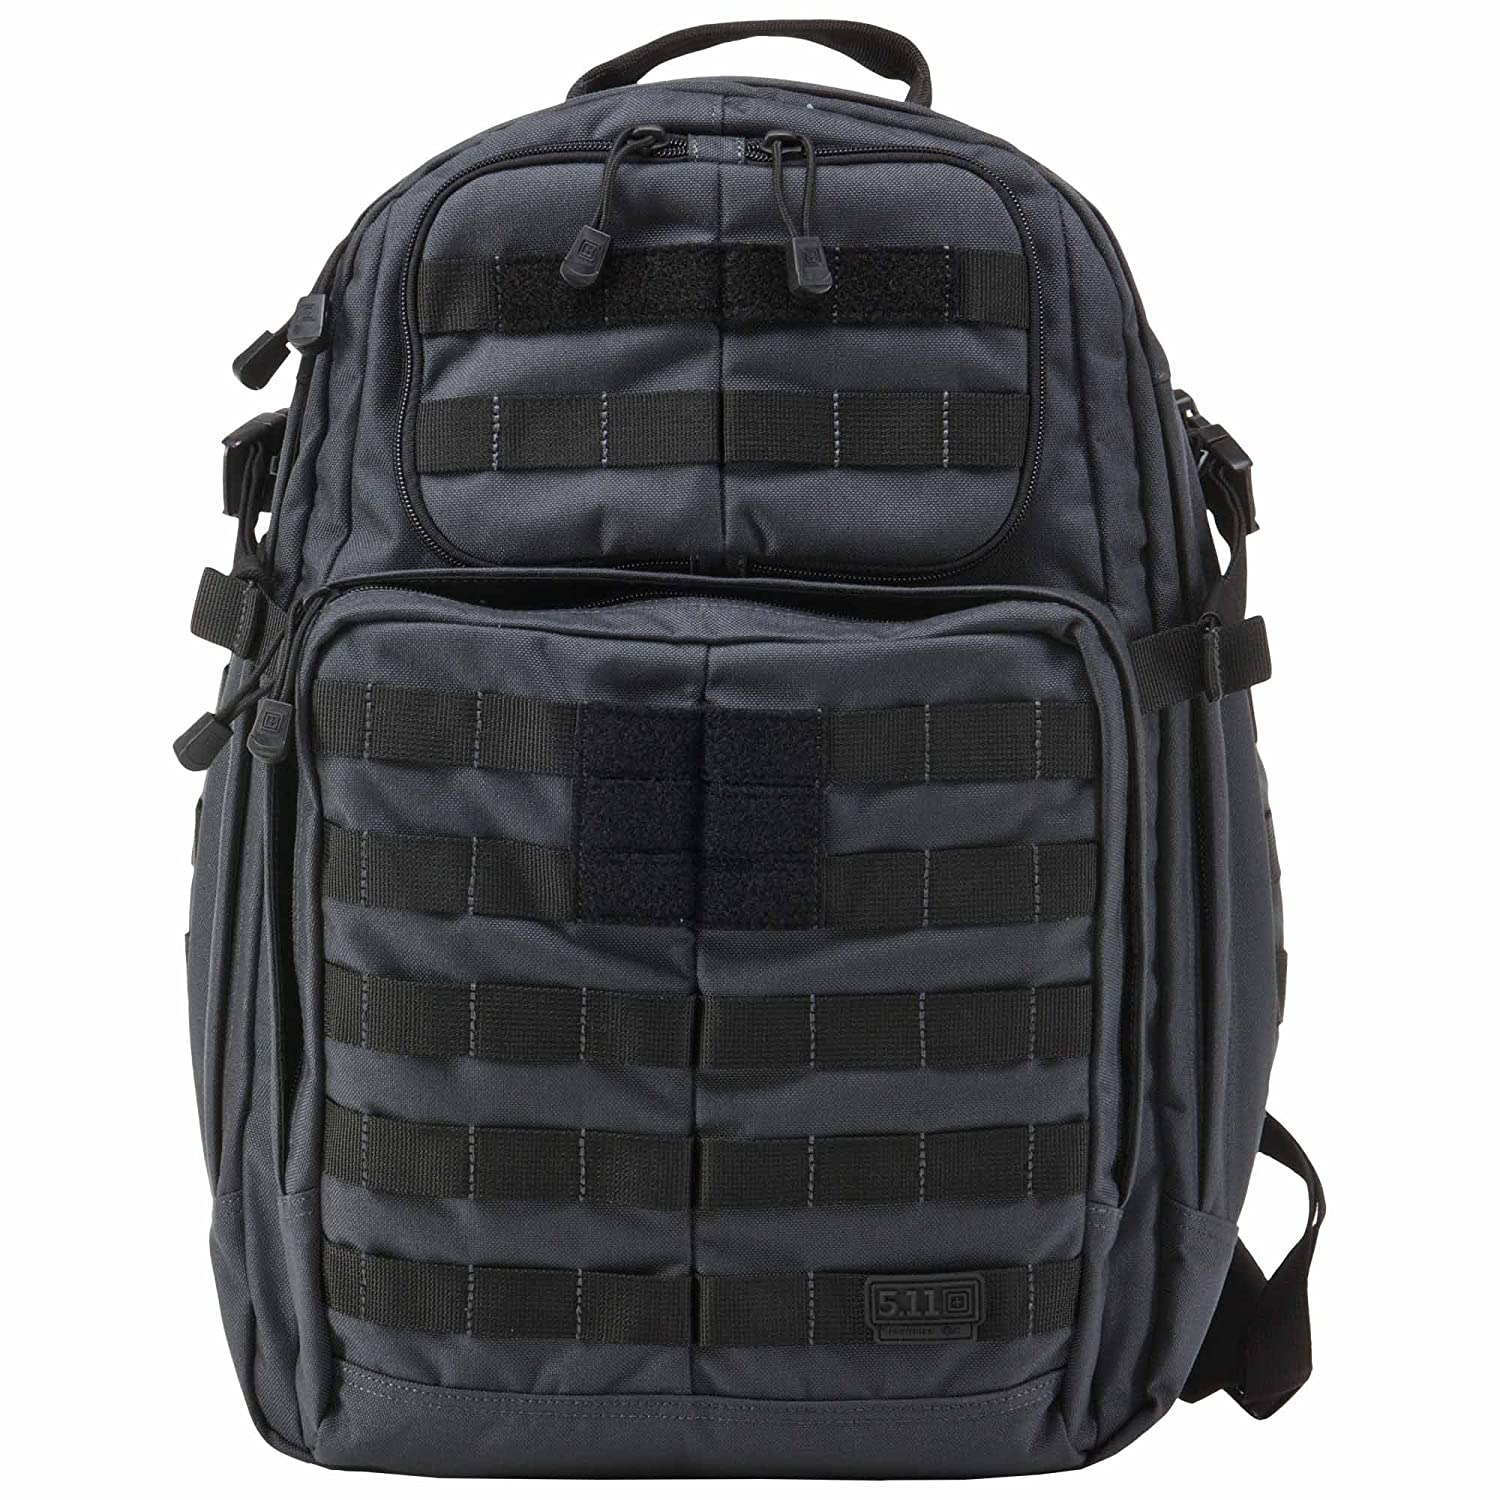 5.11 Tactical Series 1 Day Rush Backpack, Black, One Size 58601-019